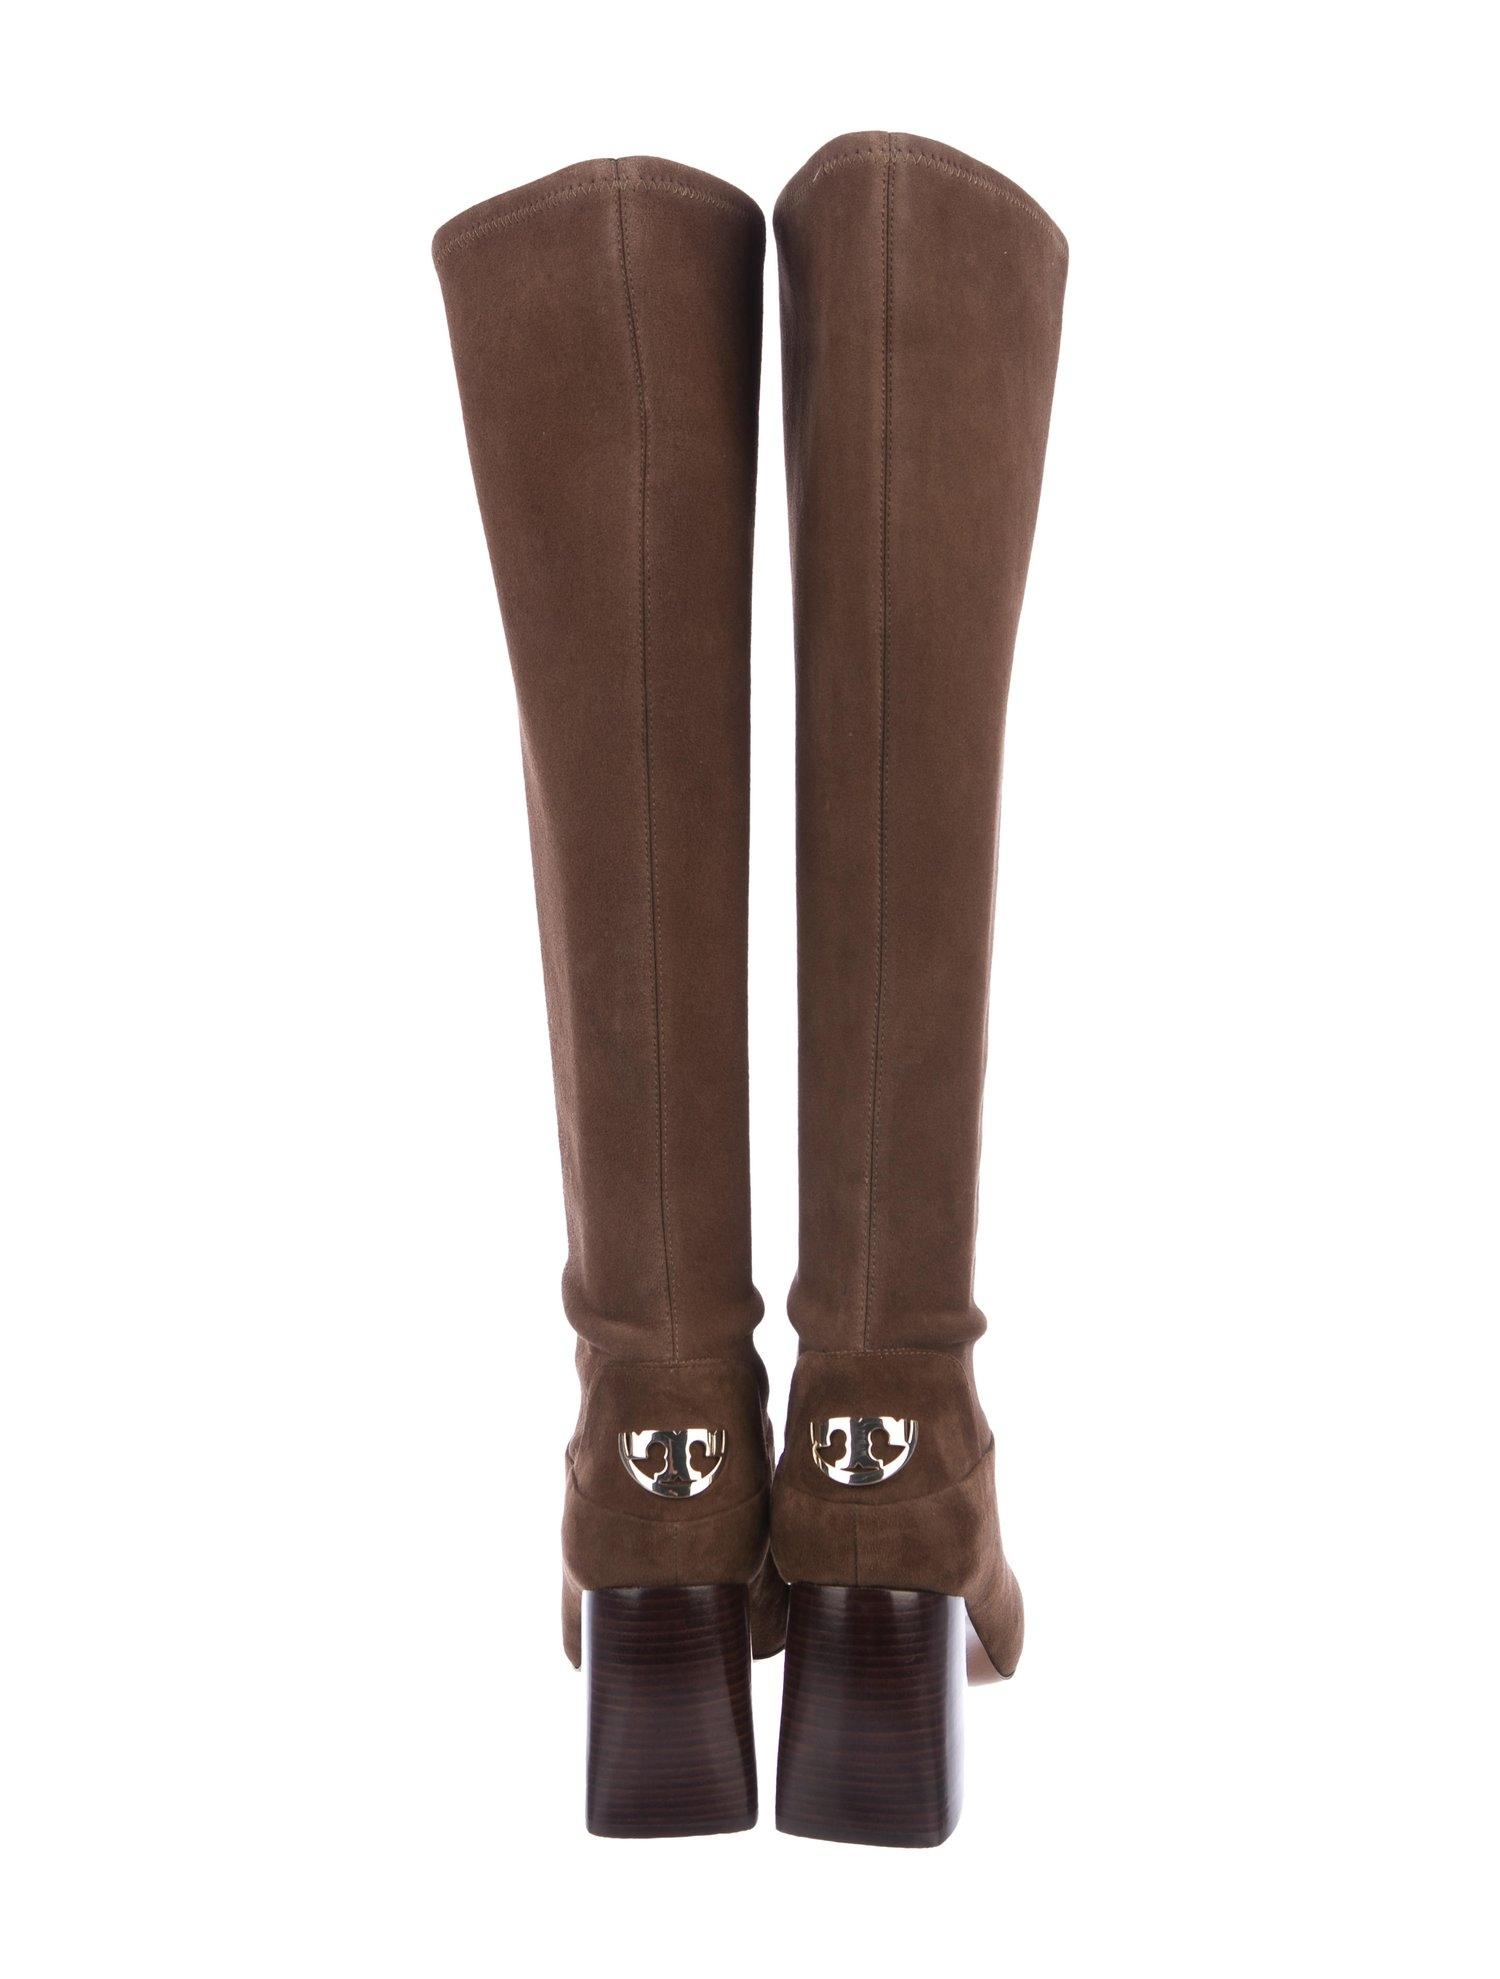 2578f8c92 ... Tory Burch Brown New Stretch Knee High Suede Winter Boots Booties Boots Booties  Boots ...